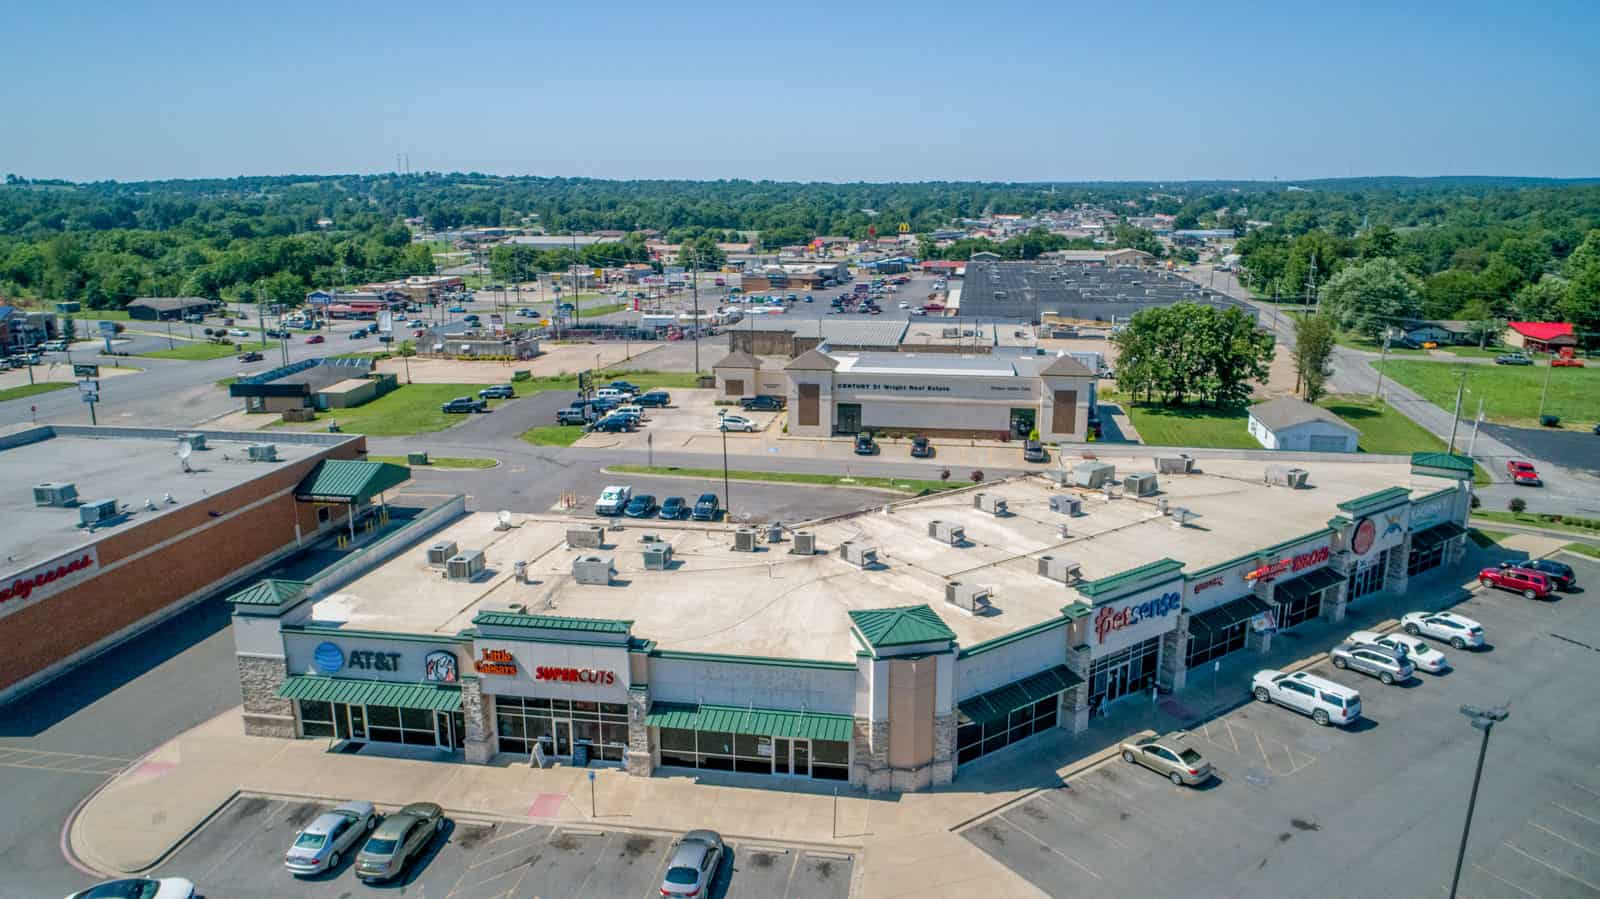 aerial drone photo of storefronts in commercial shopping center in Ohio